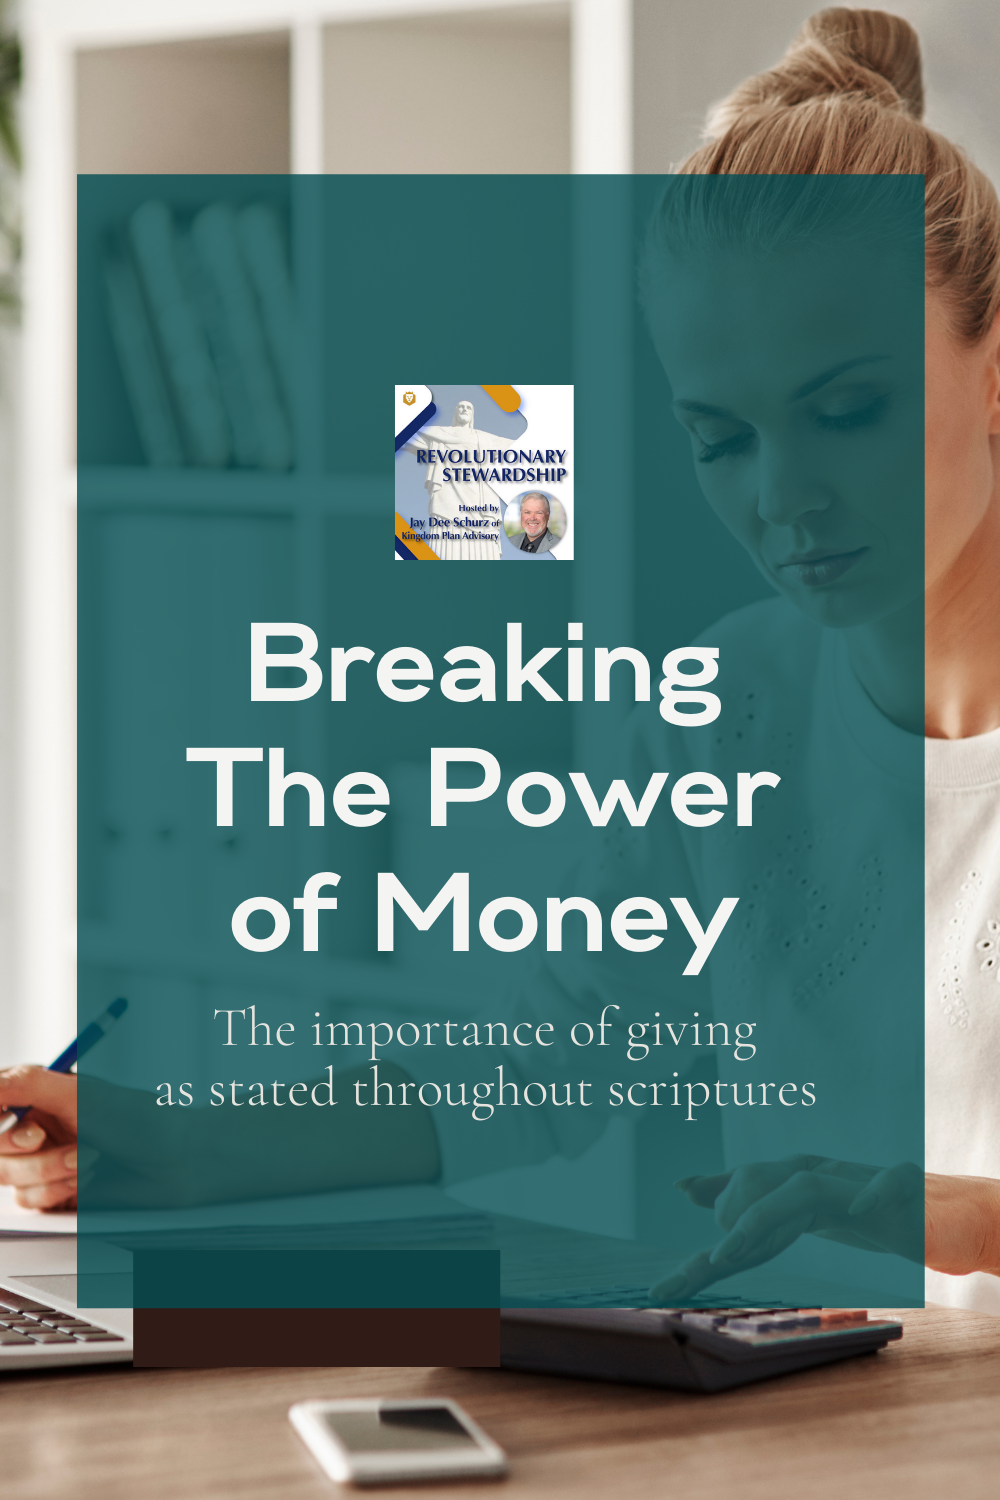 Breaking the Power of Money